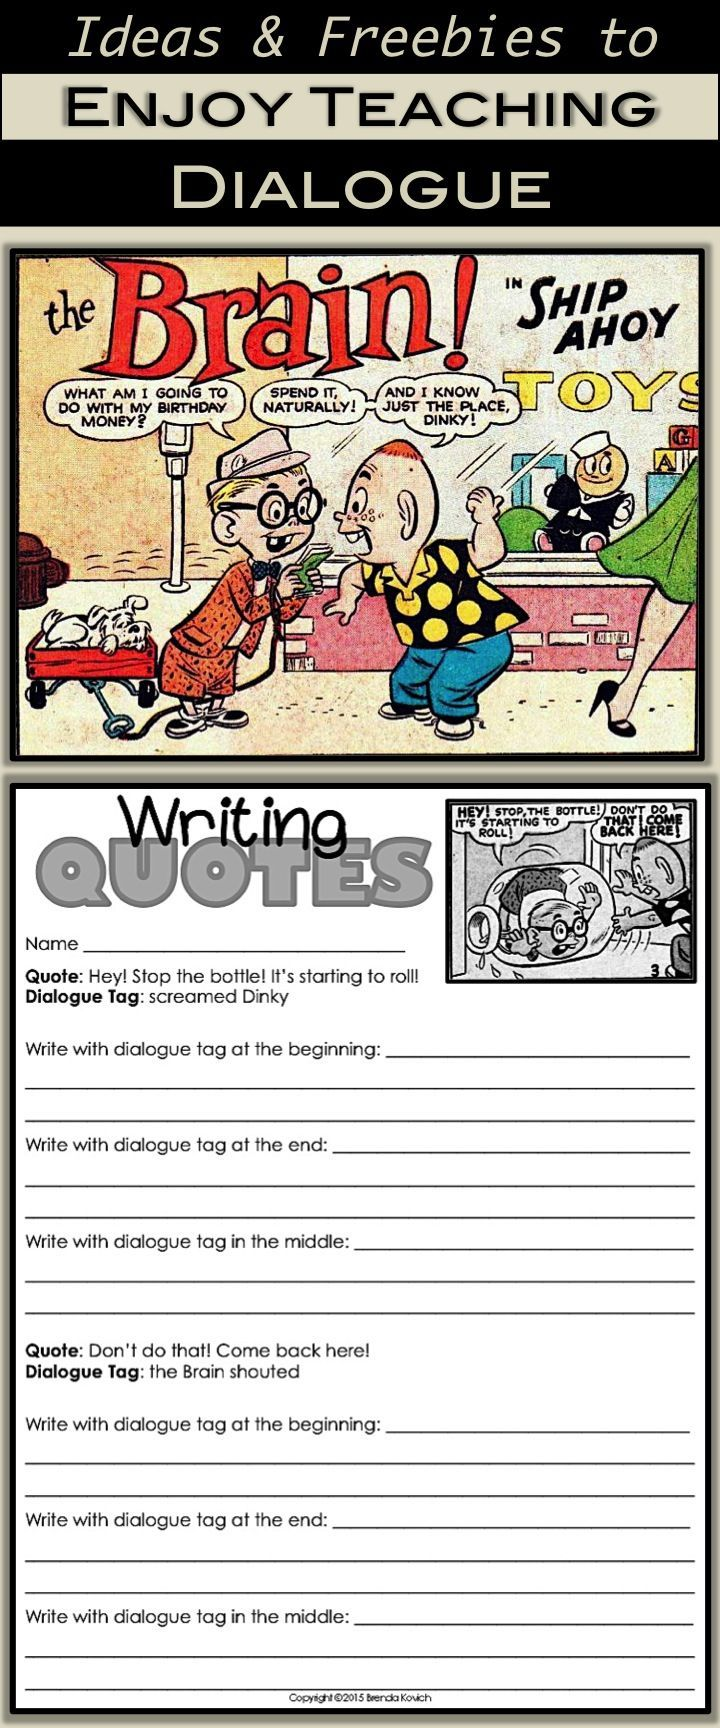 Teaching Dialogue with Language Activities for Kids | Fifth Grade